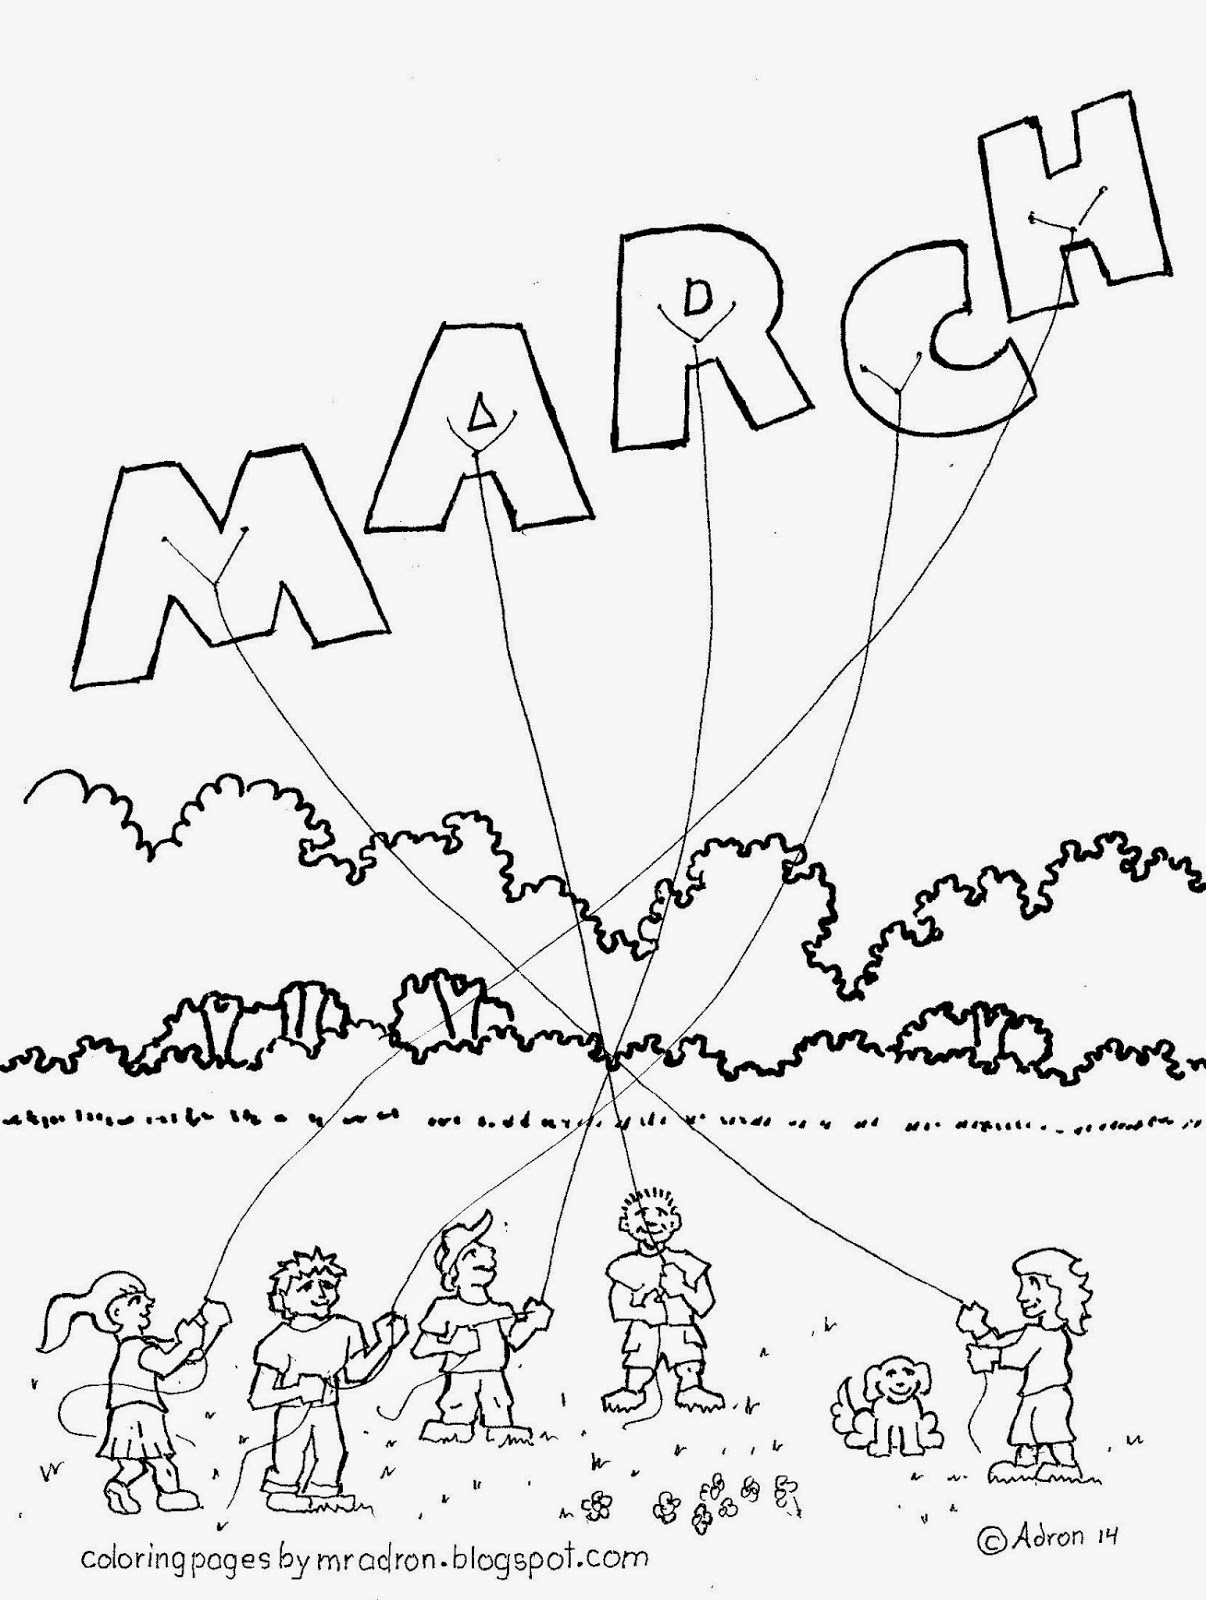 Coloring Pages for Kids by Mr Adron Month March Free